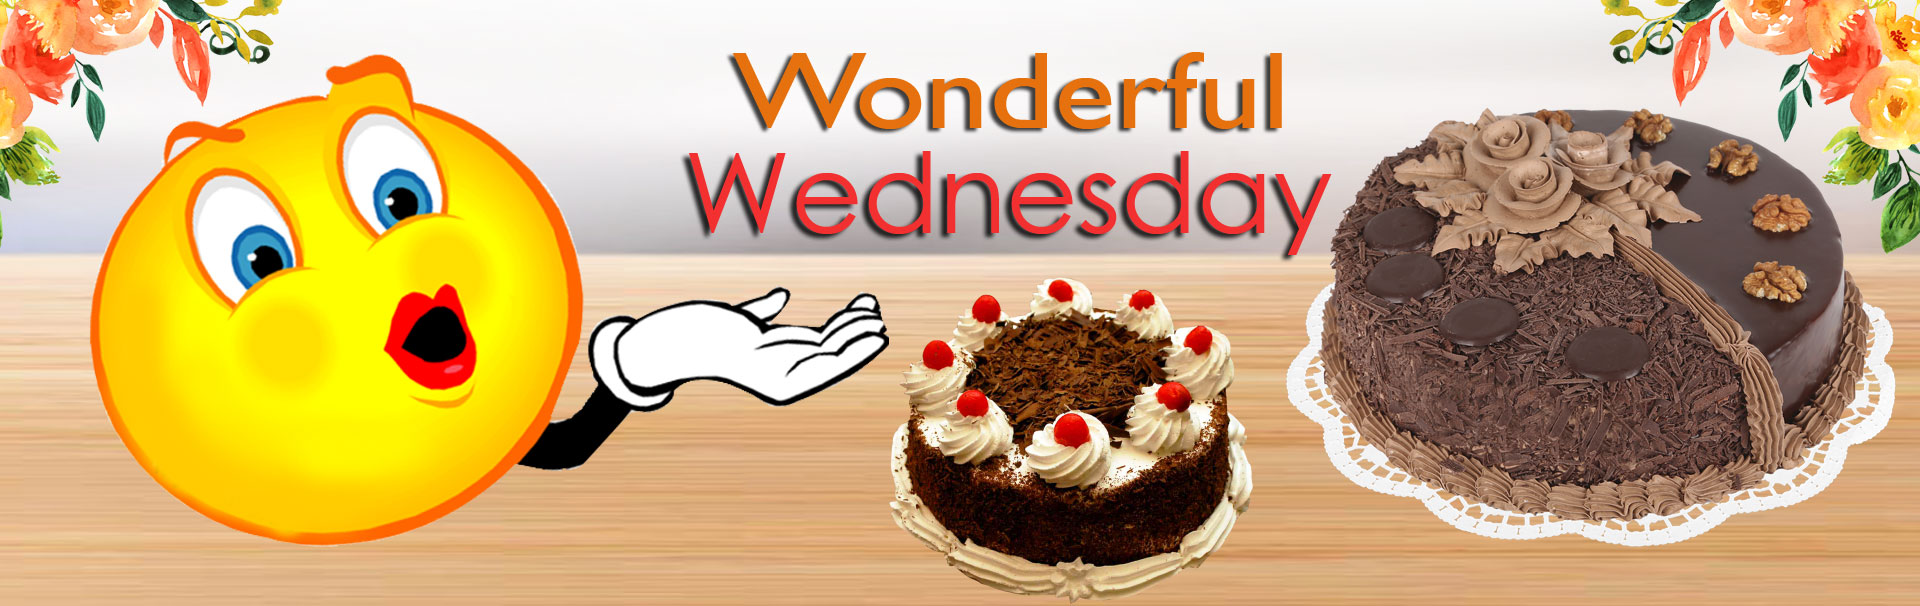 Welcome to Wednesday in cakes on hand